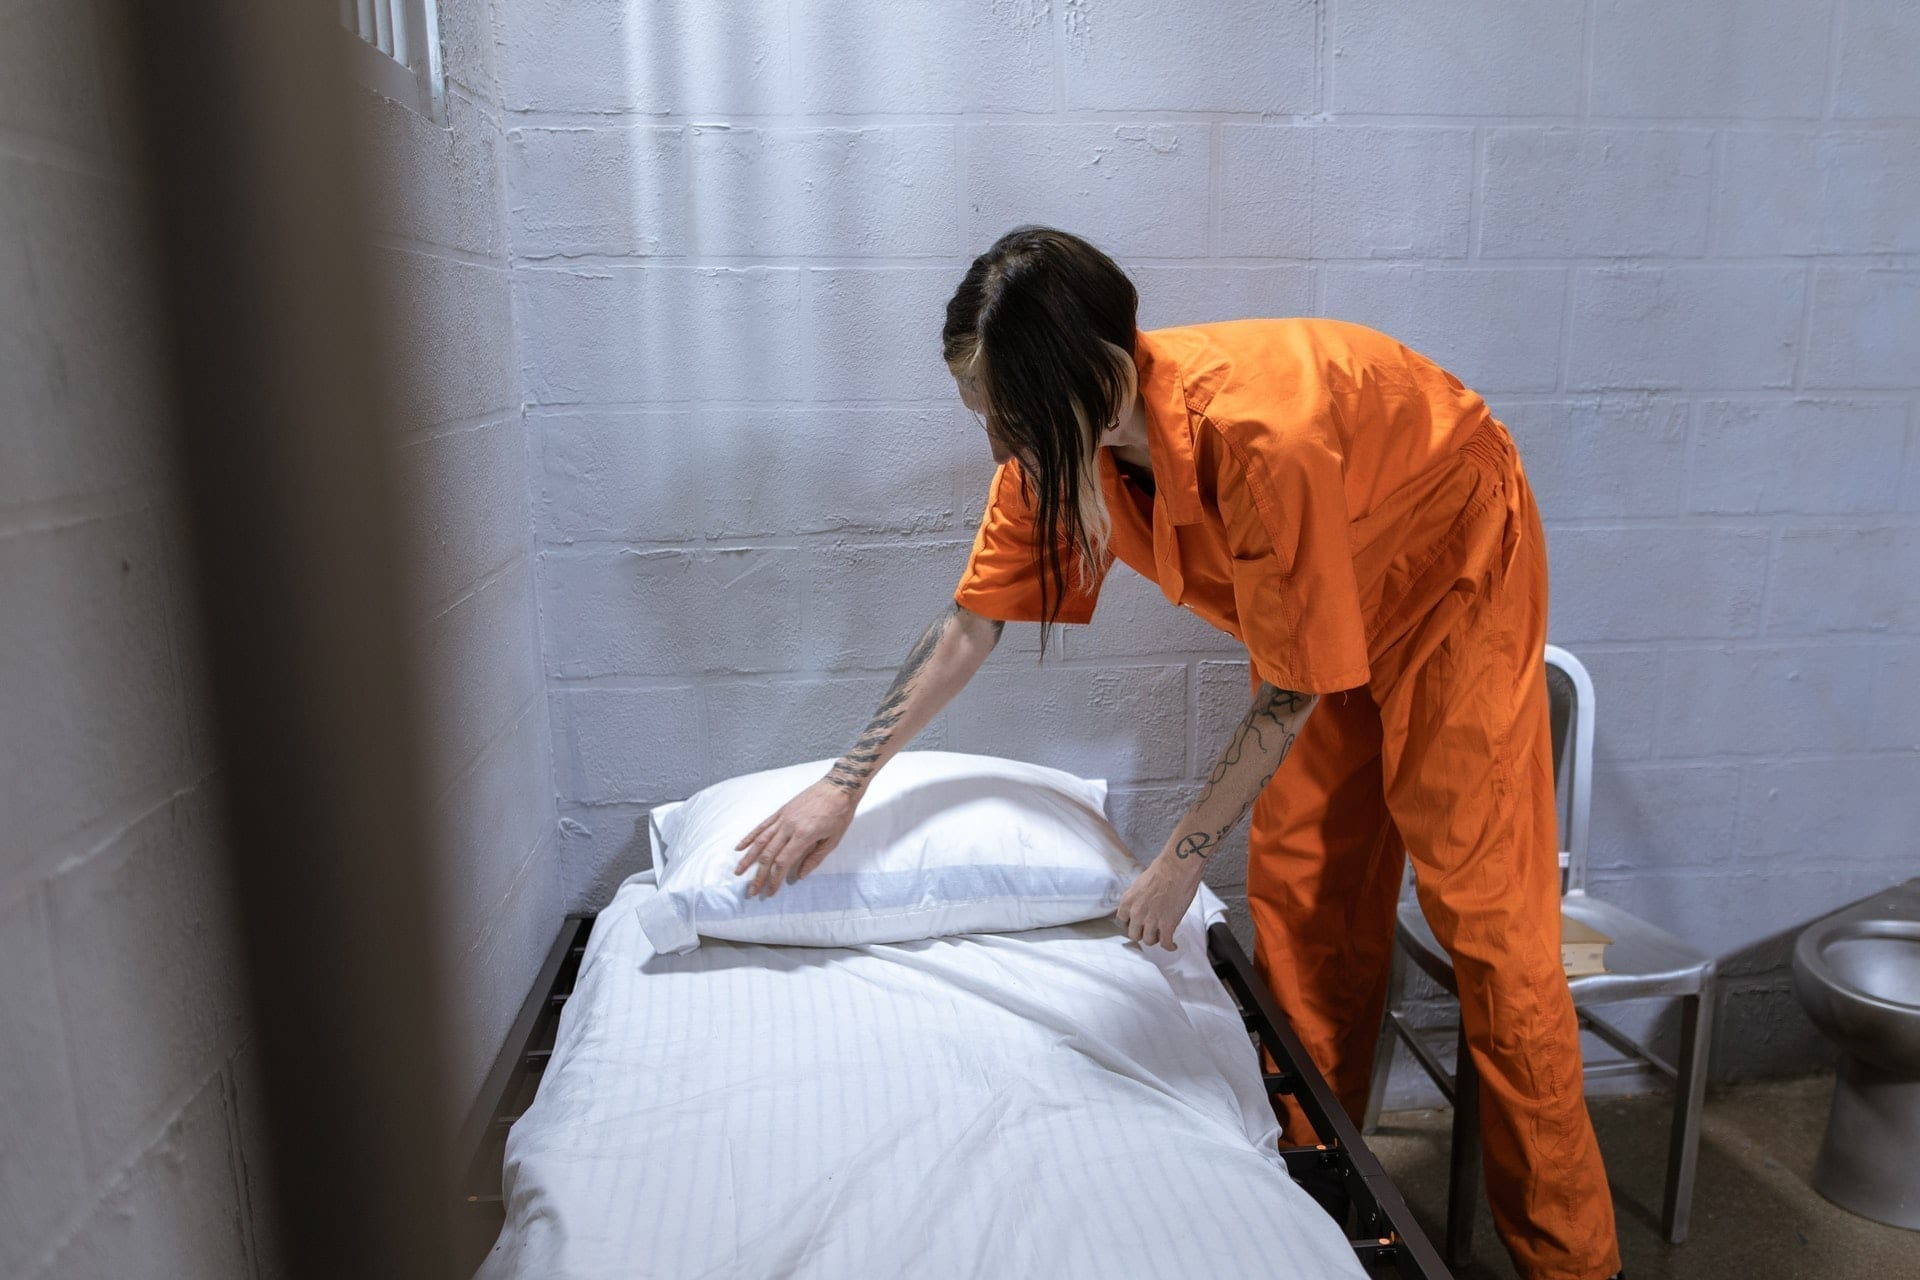 You can take your things with you as part of the federal prison release process.